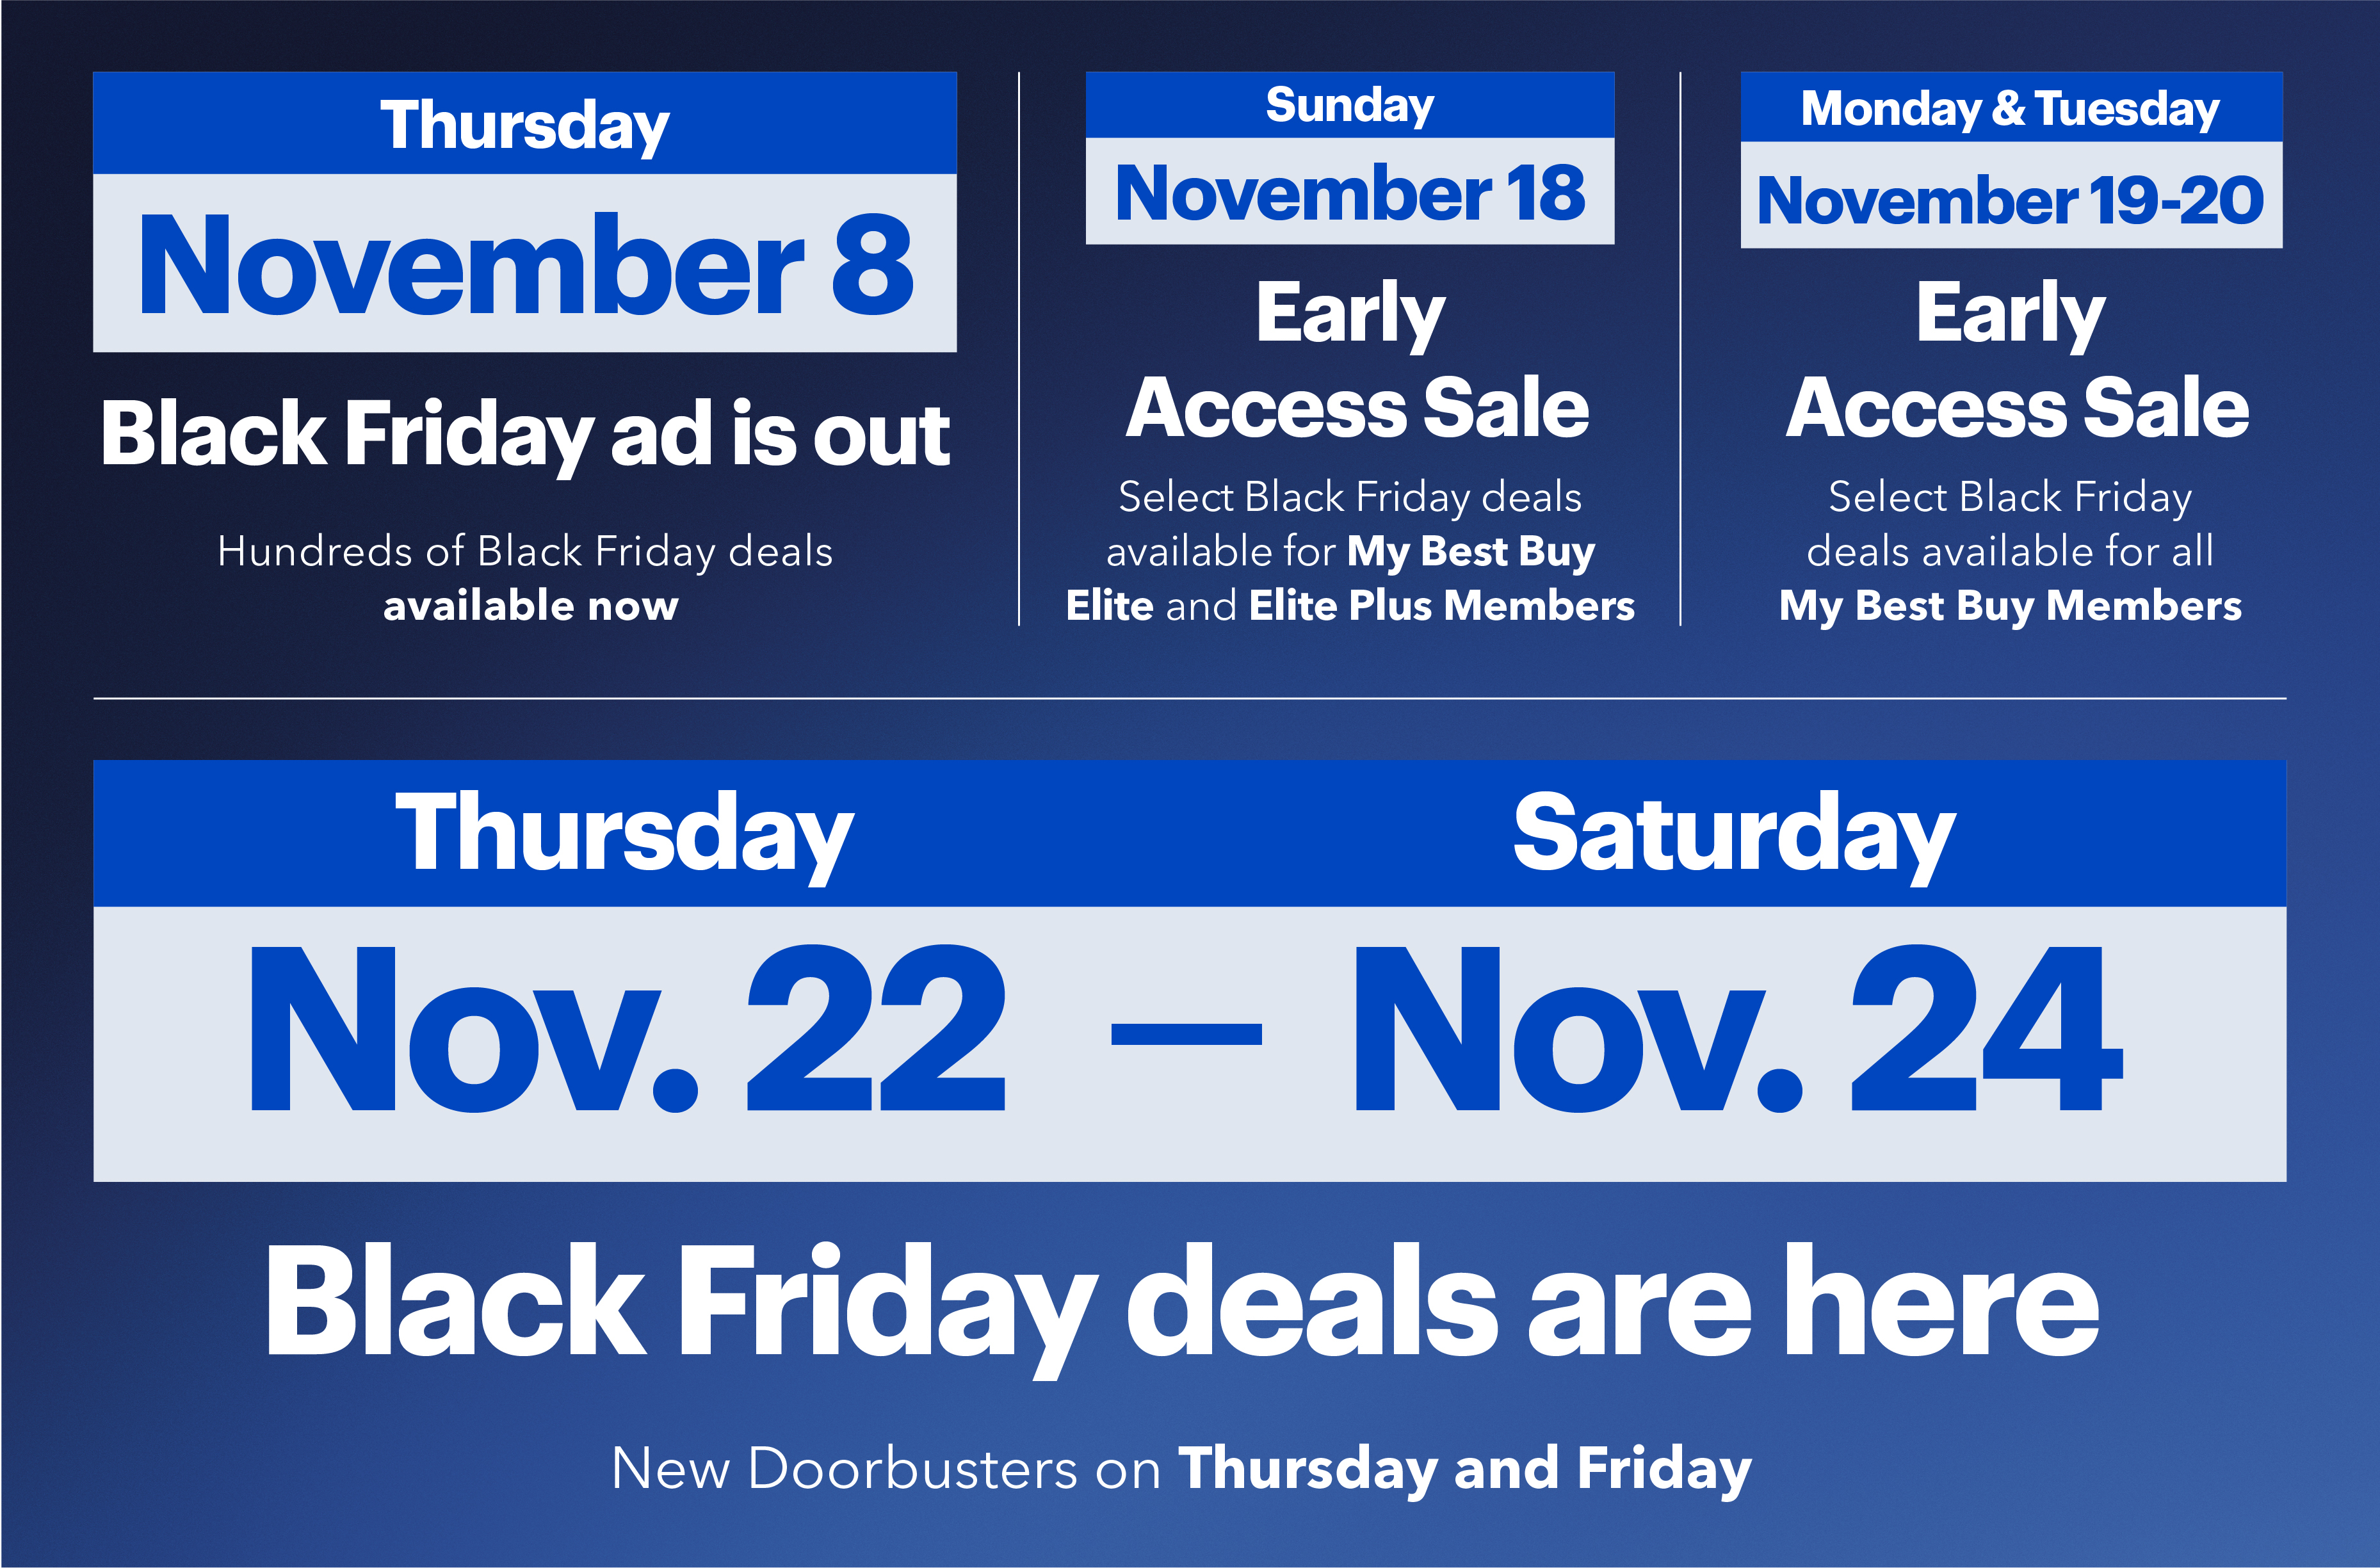 Black Friday Starts Now At Best Buy Hundreds Of Deals From Just Released Black Friday Ad Available Today Through Sunday Business Wire